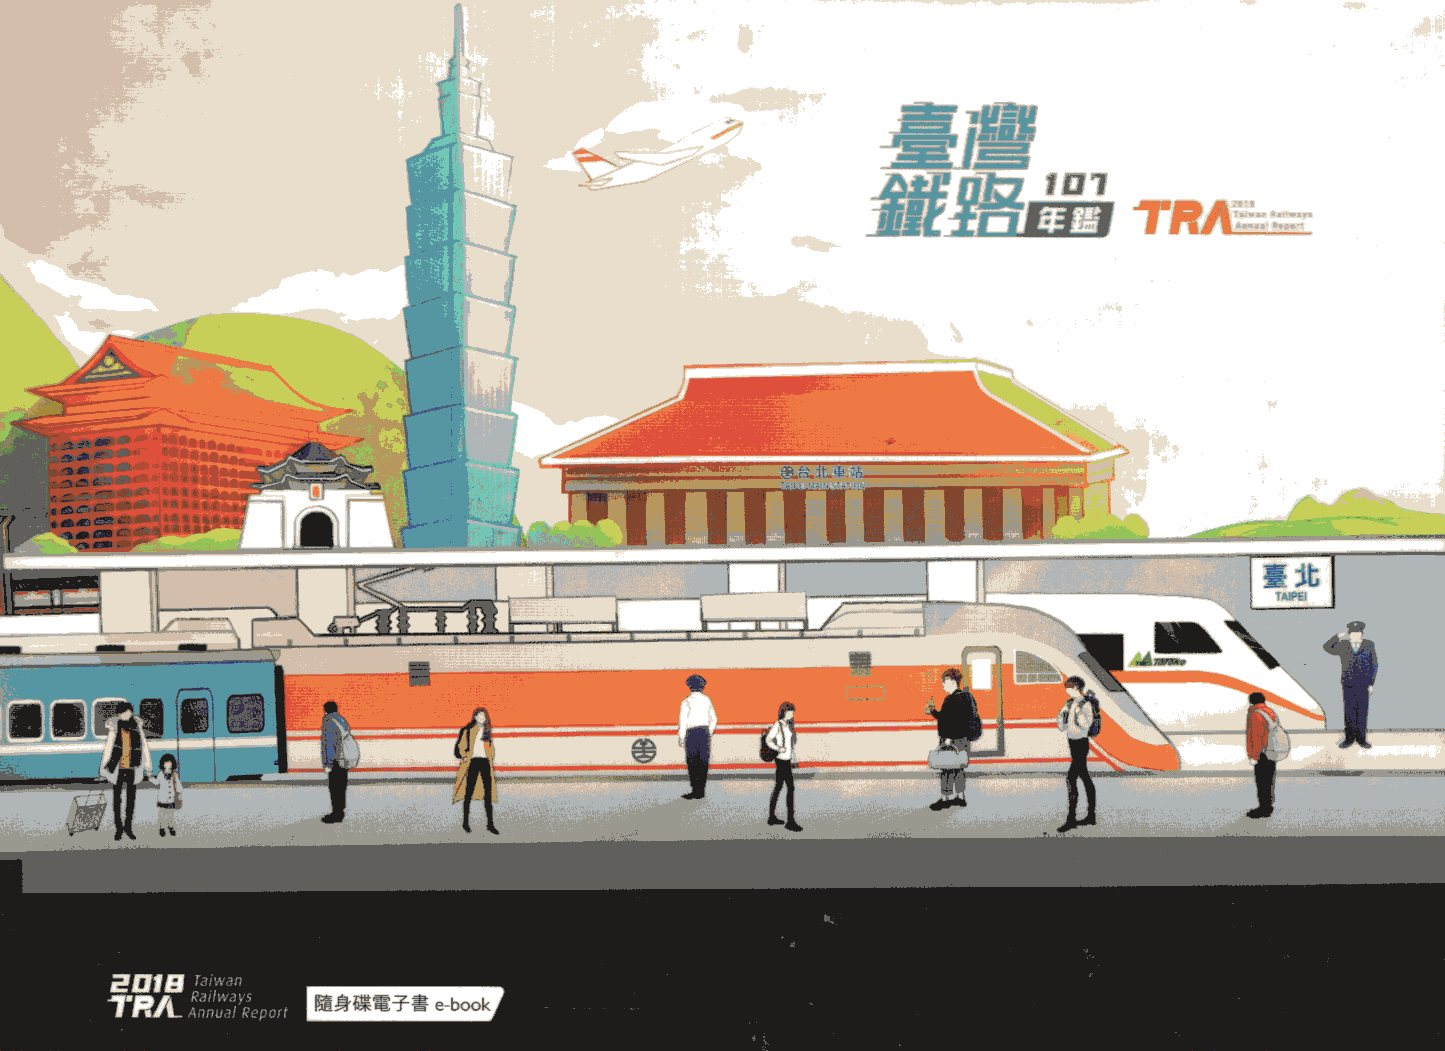 Taiwan Railways Annual Report